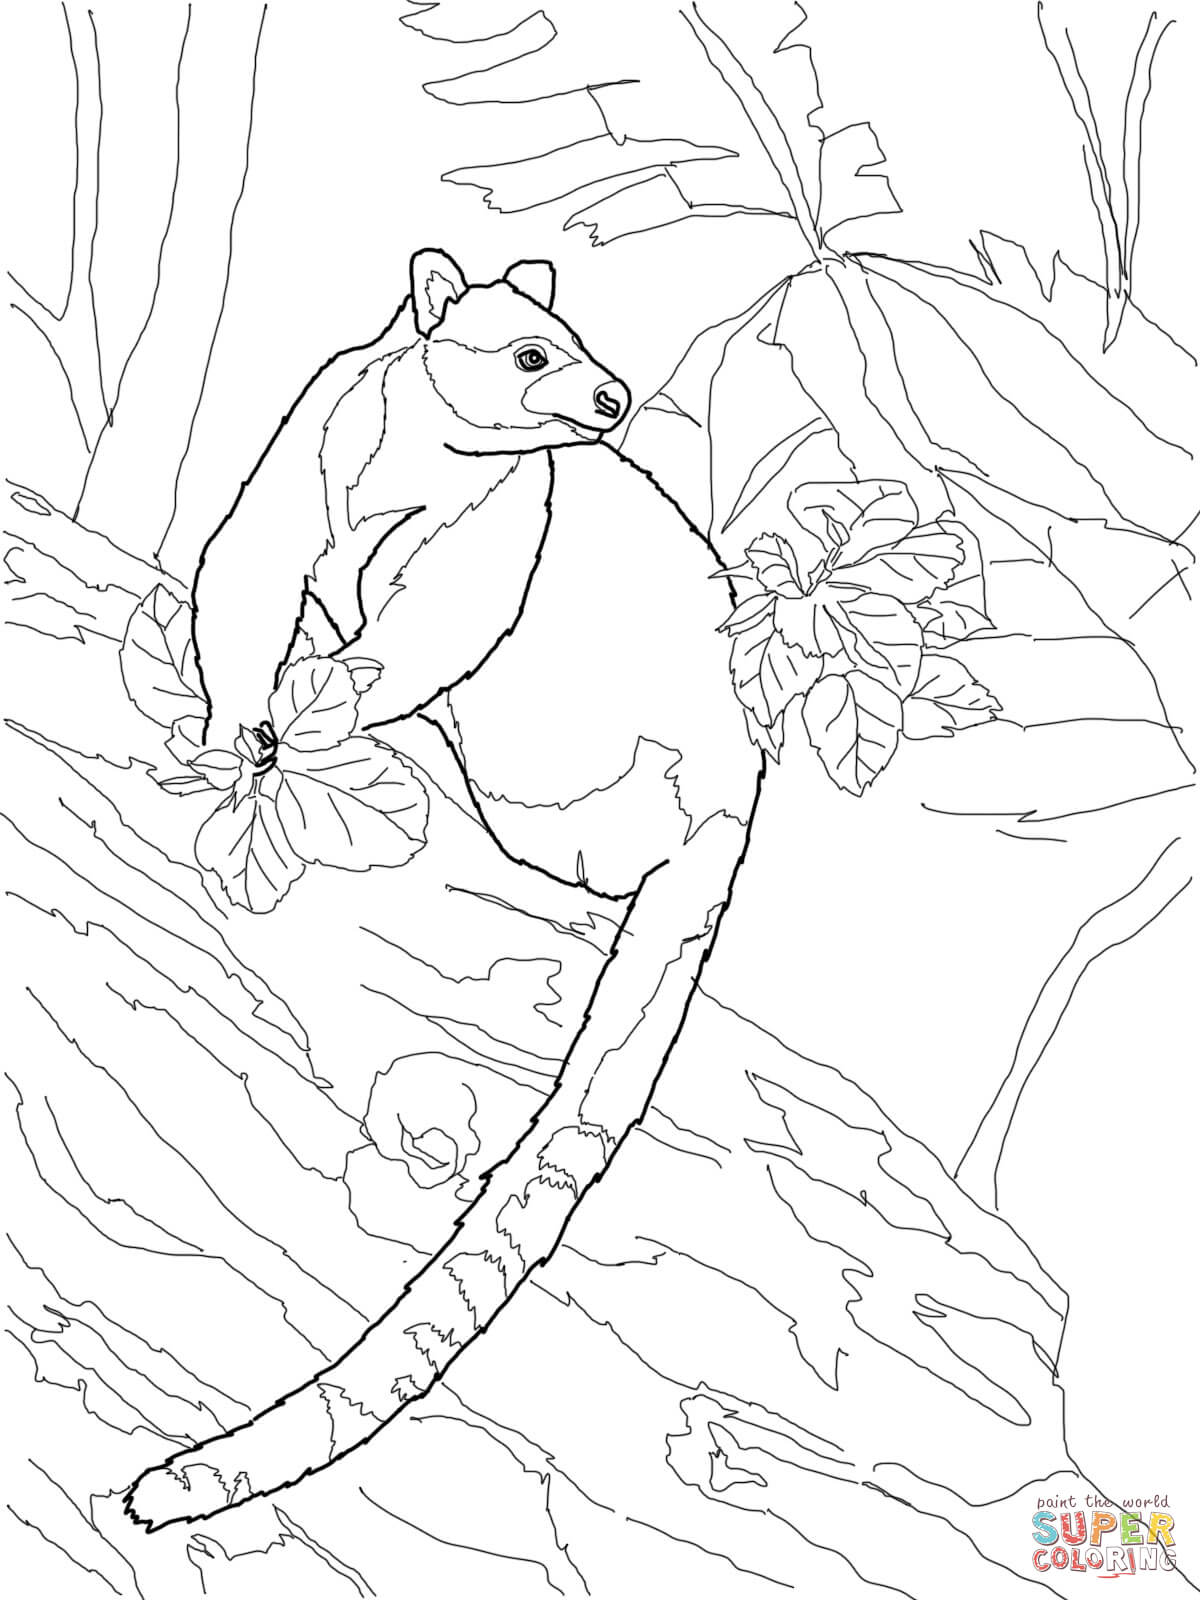 Coloring Kangaroo Coloring Face Coloring Pages